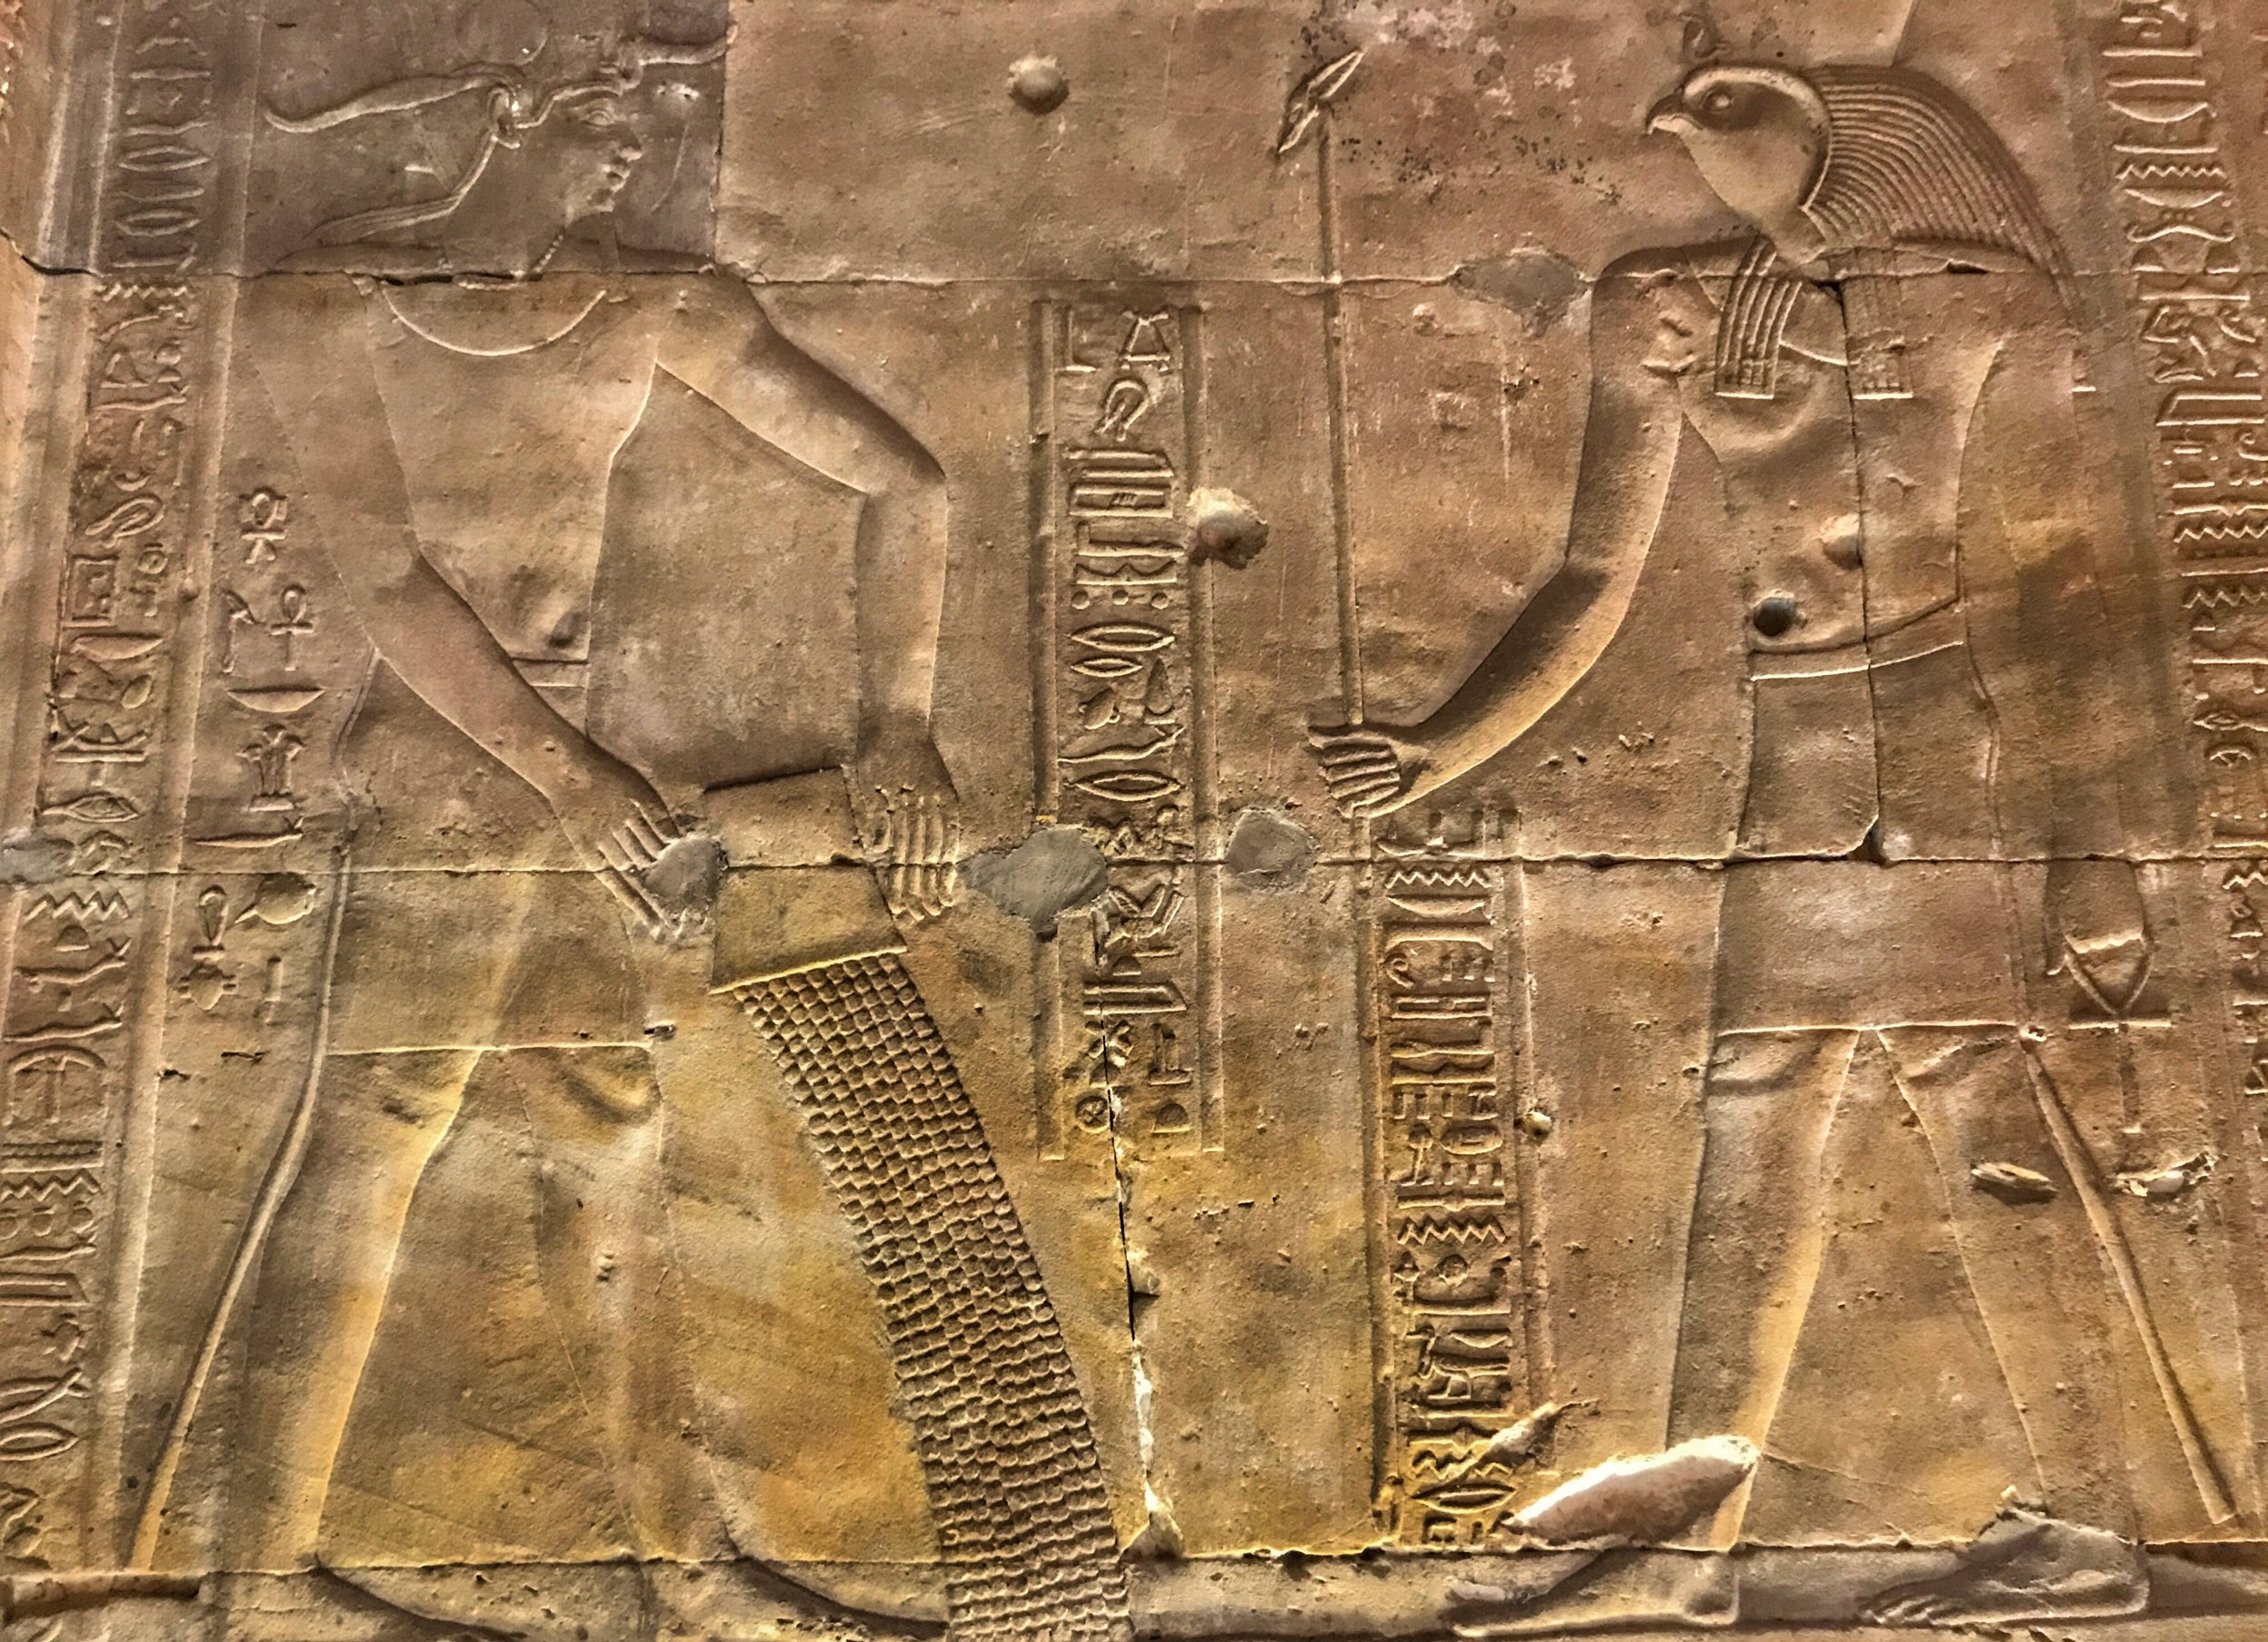 The figure on the left pours out holy water in front of Horus